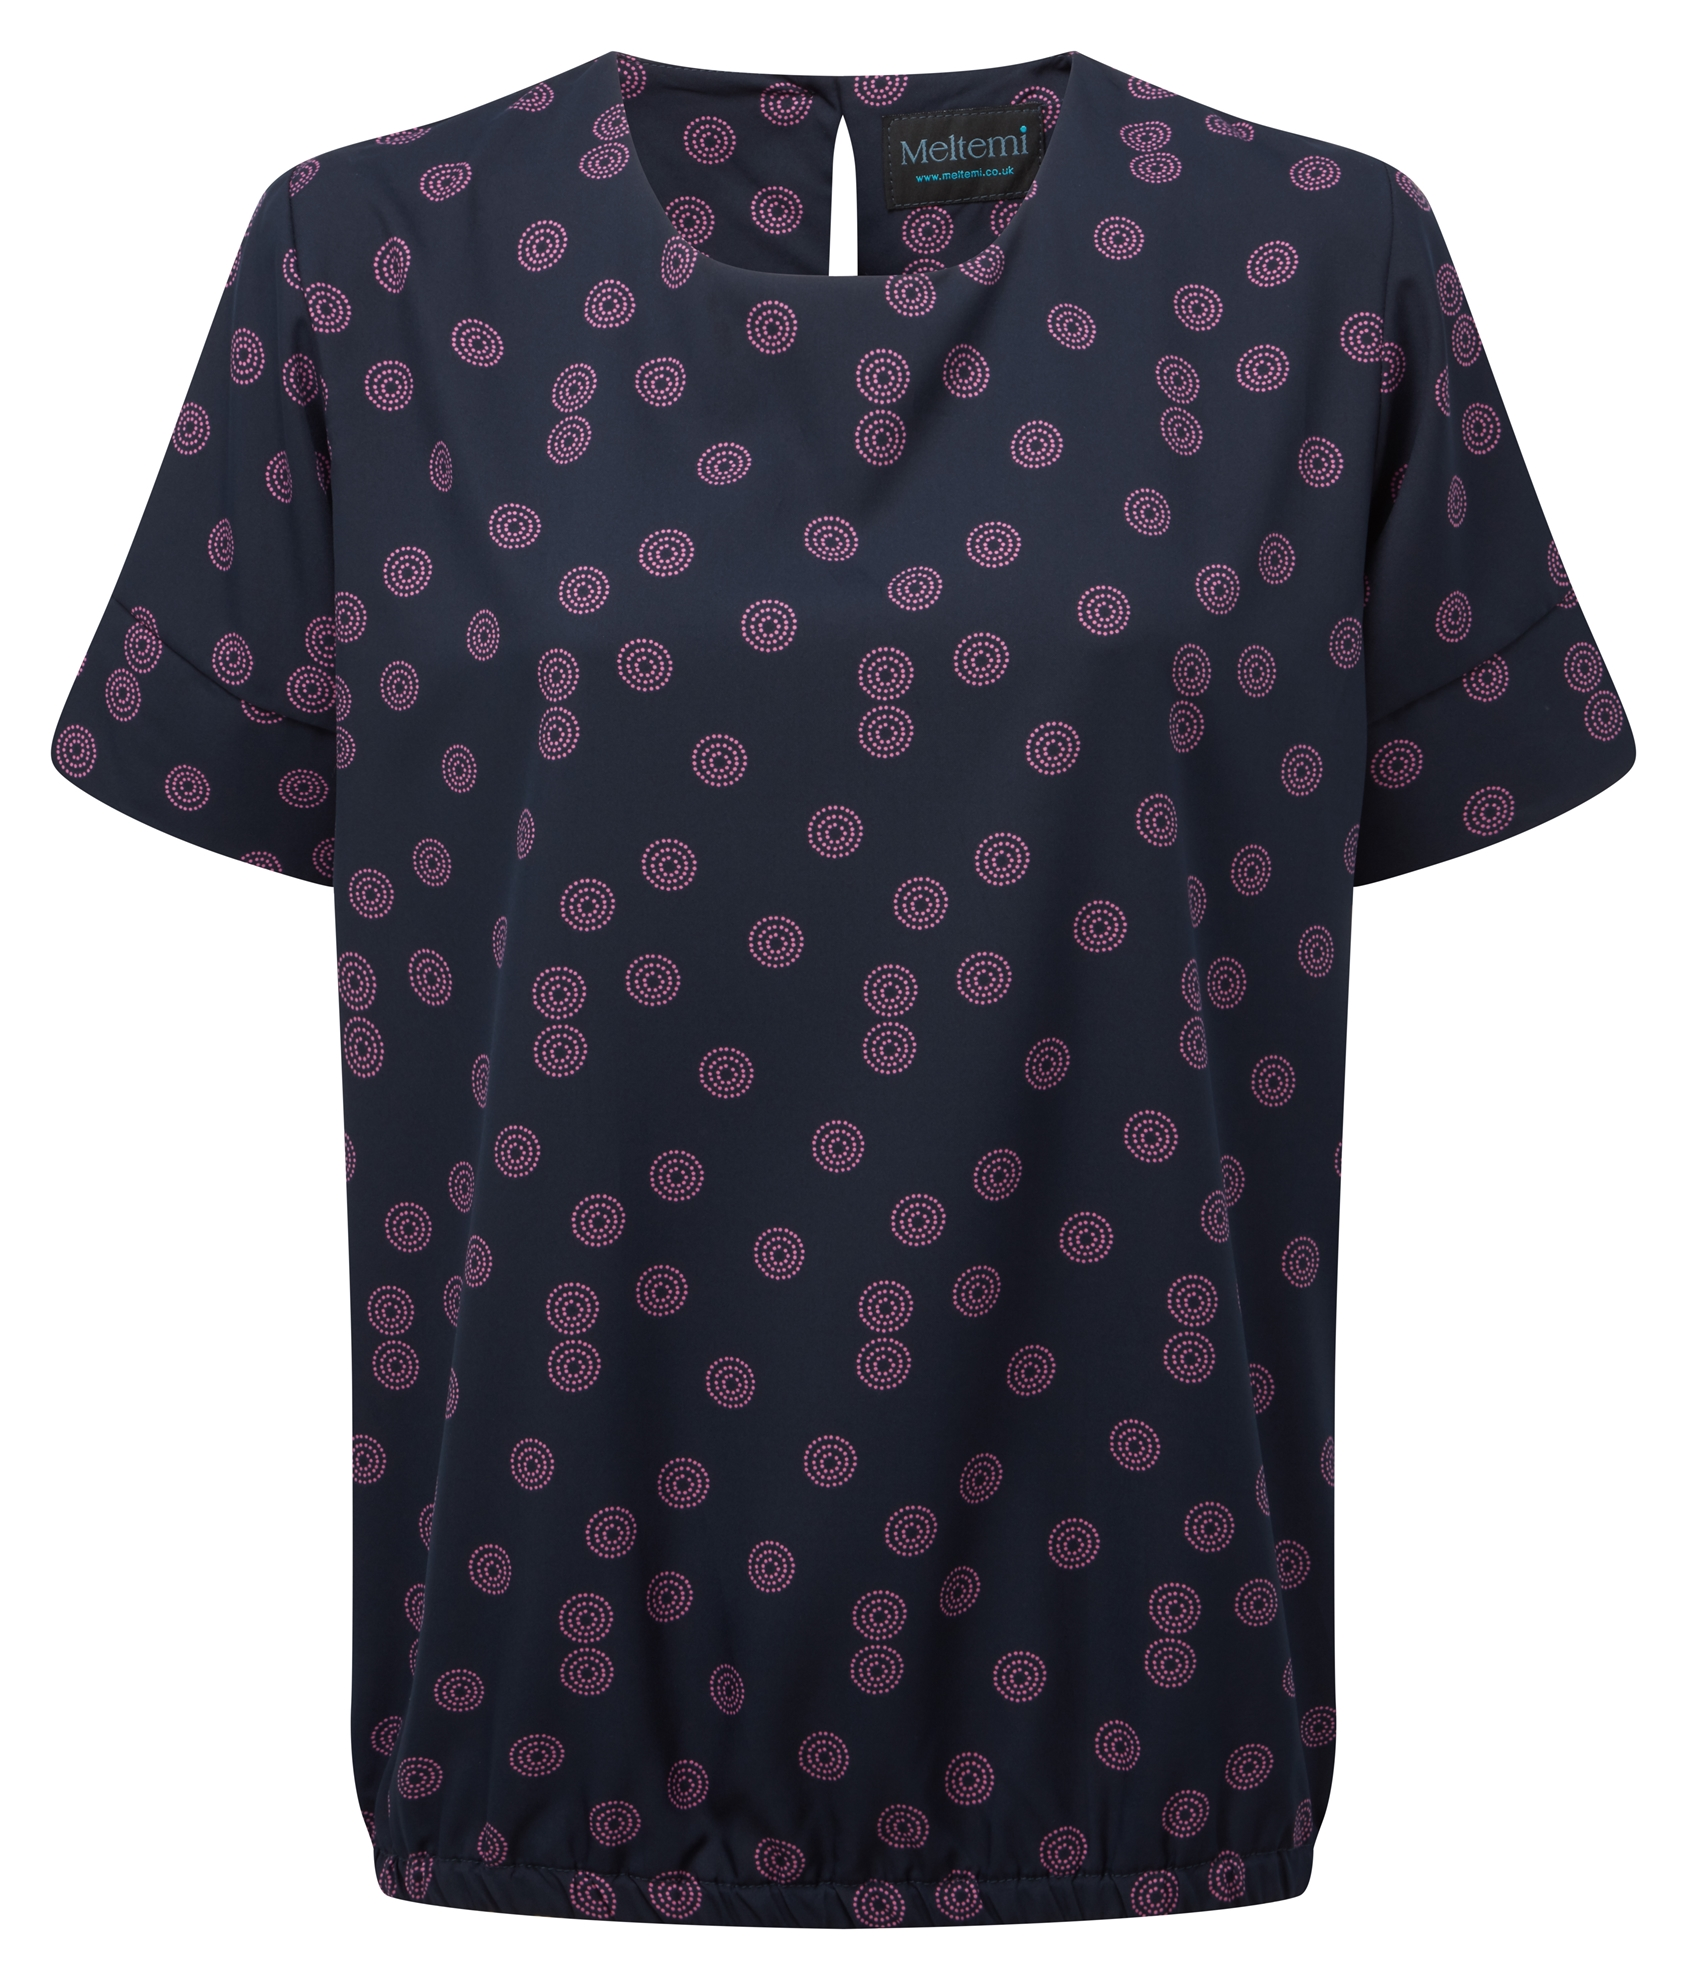 Picture of Looser Fit CoolWeave Blouson Style Blouse - Navy/Pink Sienna Print